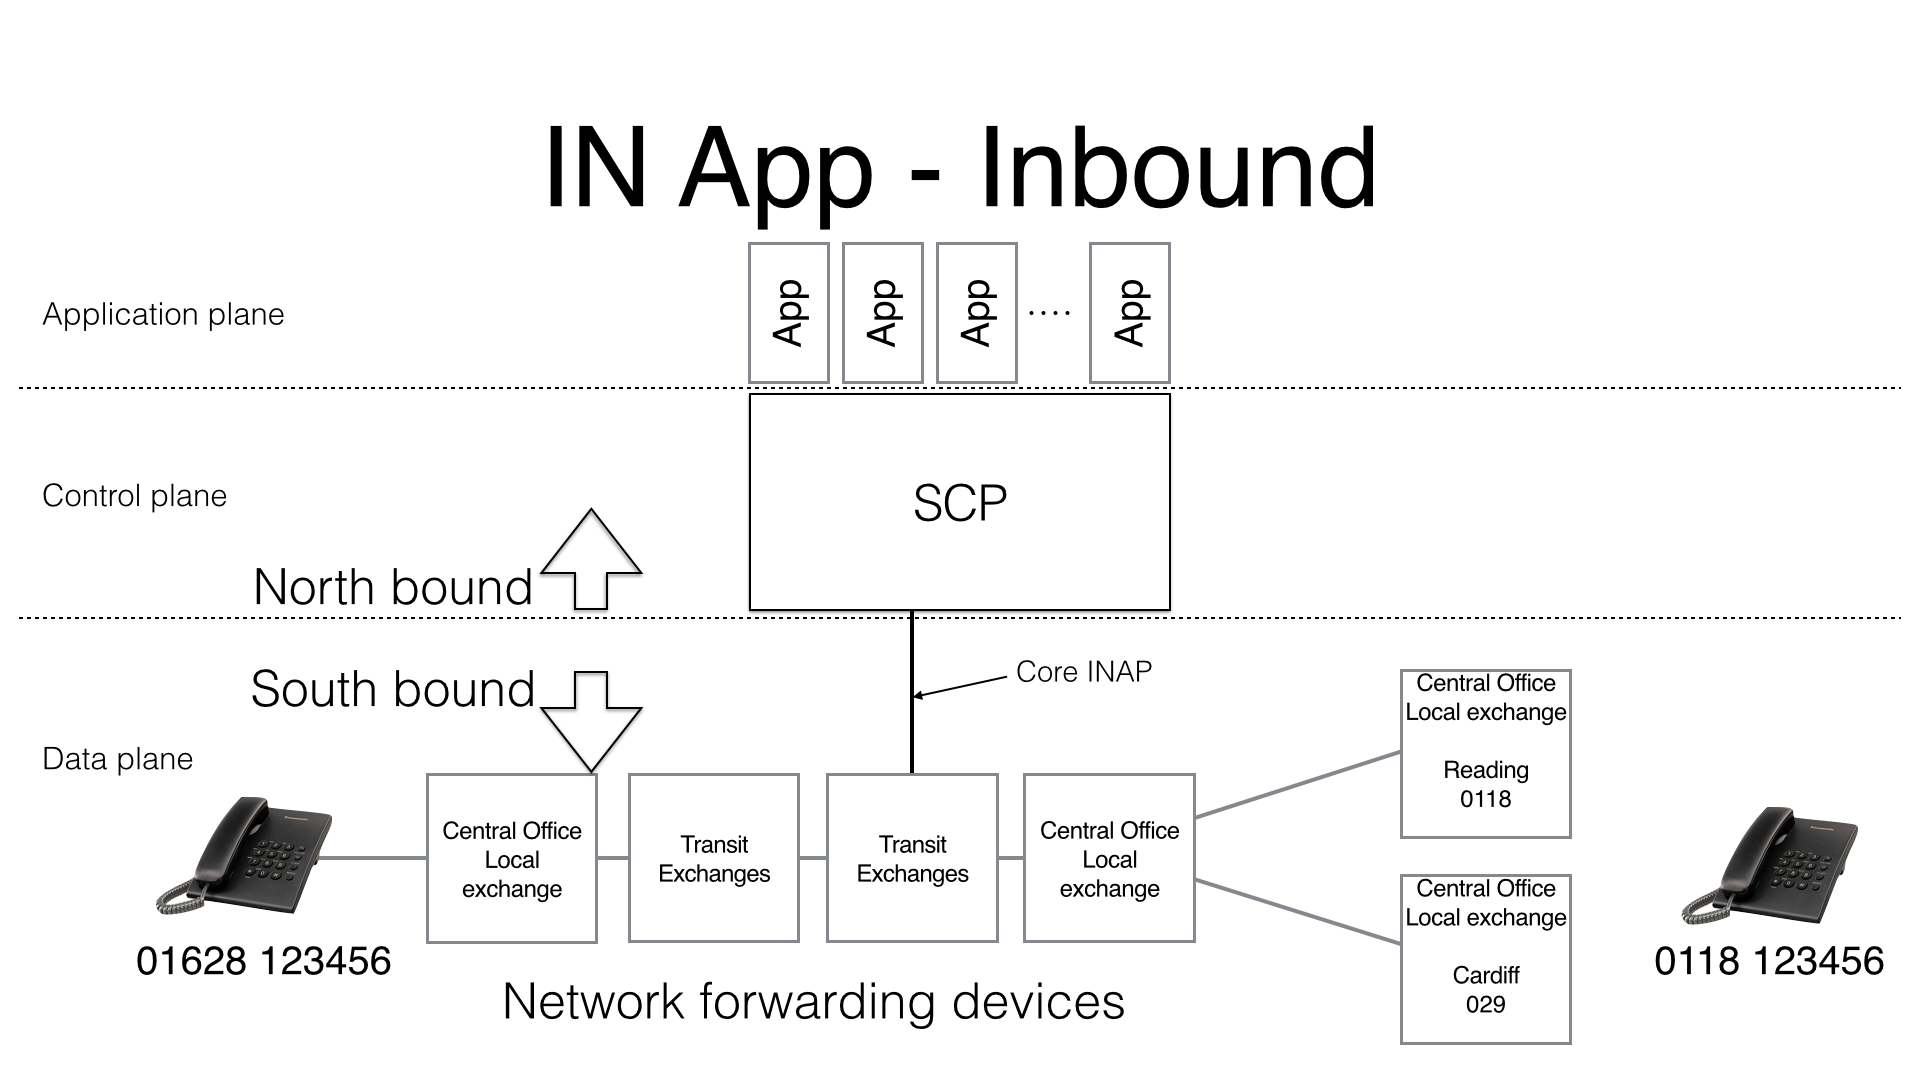 IN components aligned with SDN terminology